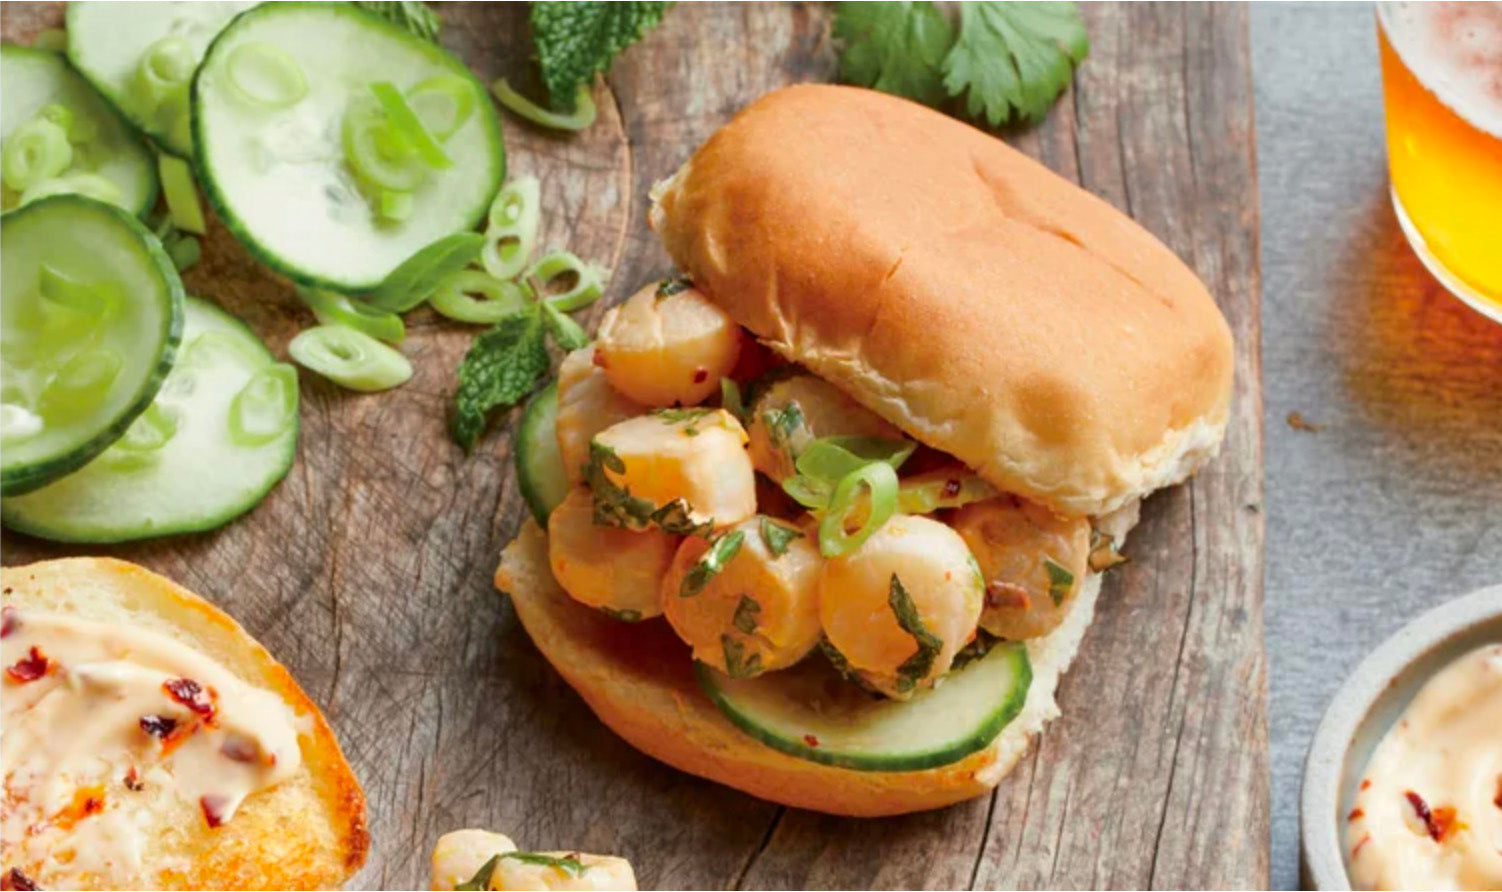 Bay Scallop Salad Sliders with Chile Mayo